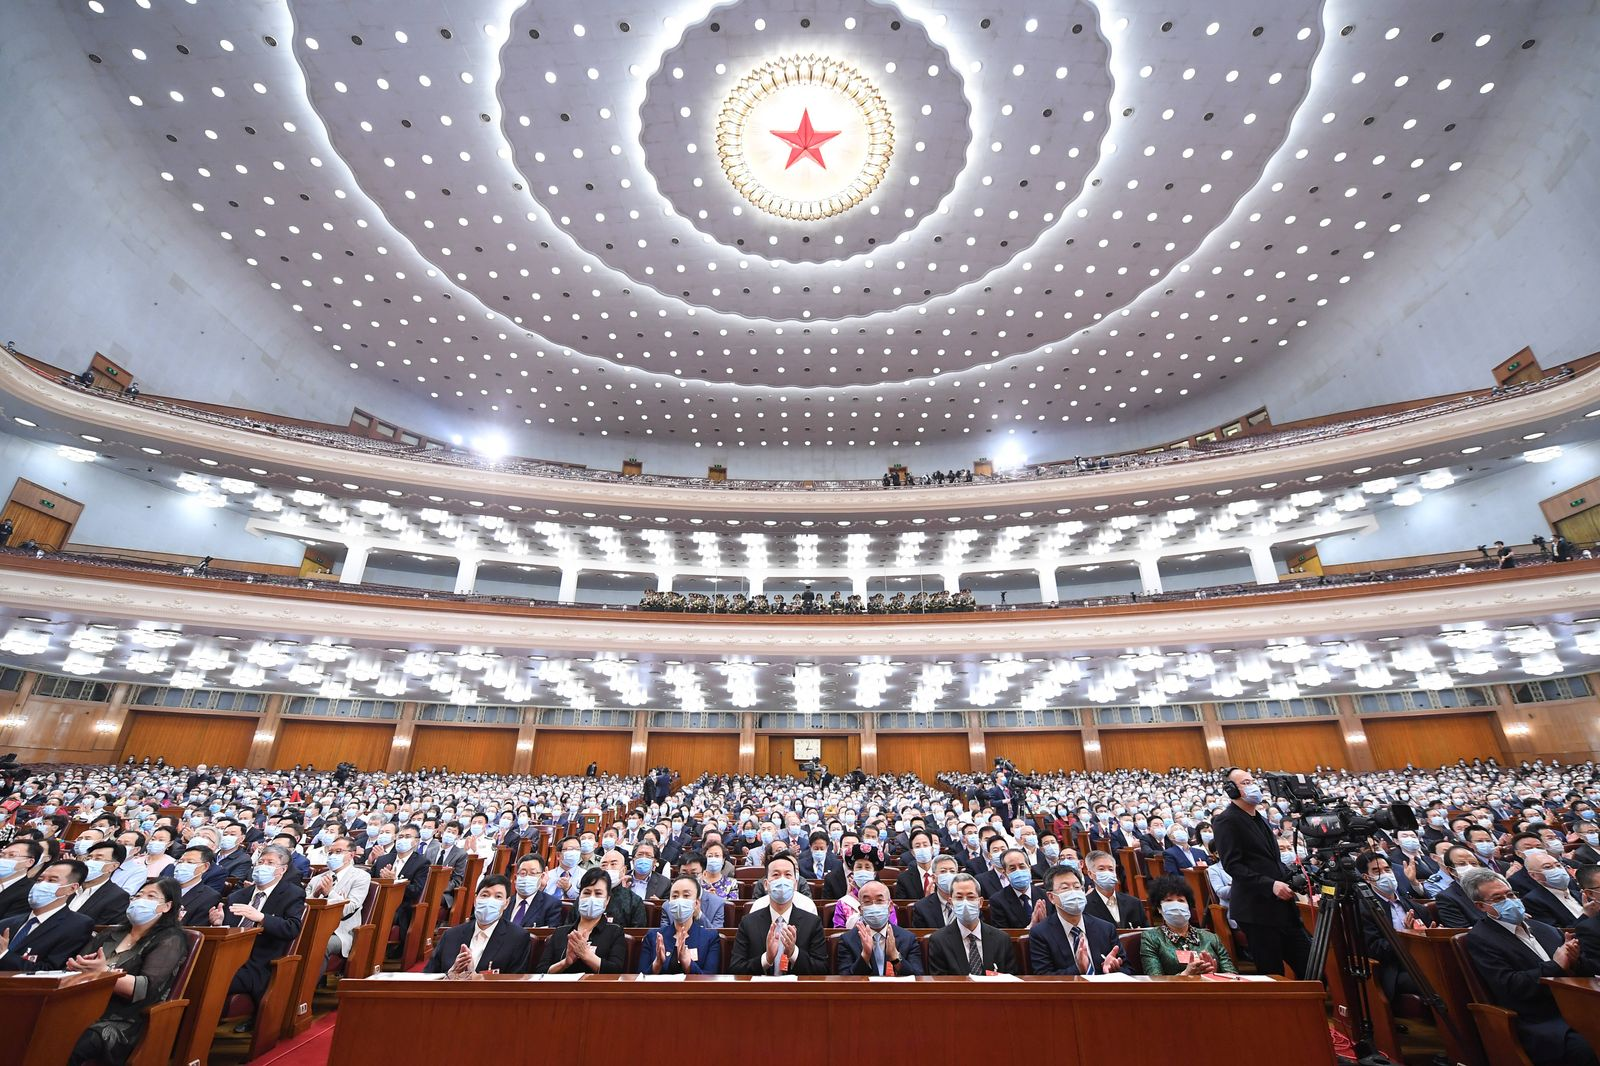 (200521) -- BEIJING, May 21, 2020 -- The third session of the 13th National Committee of the Chinese People s Political